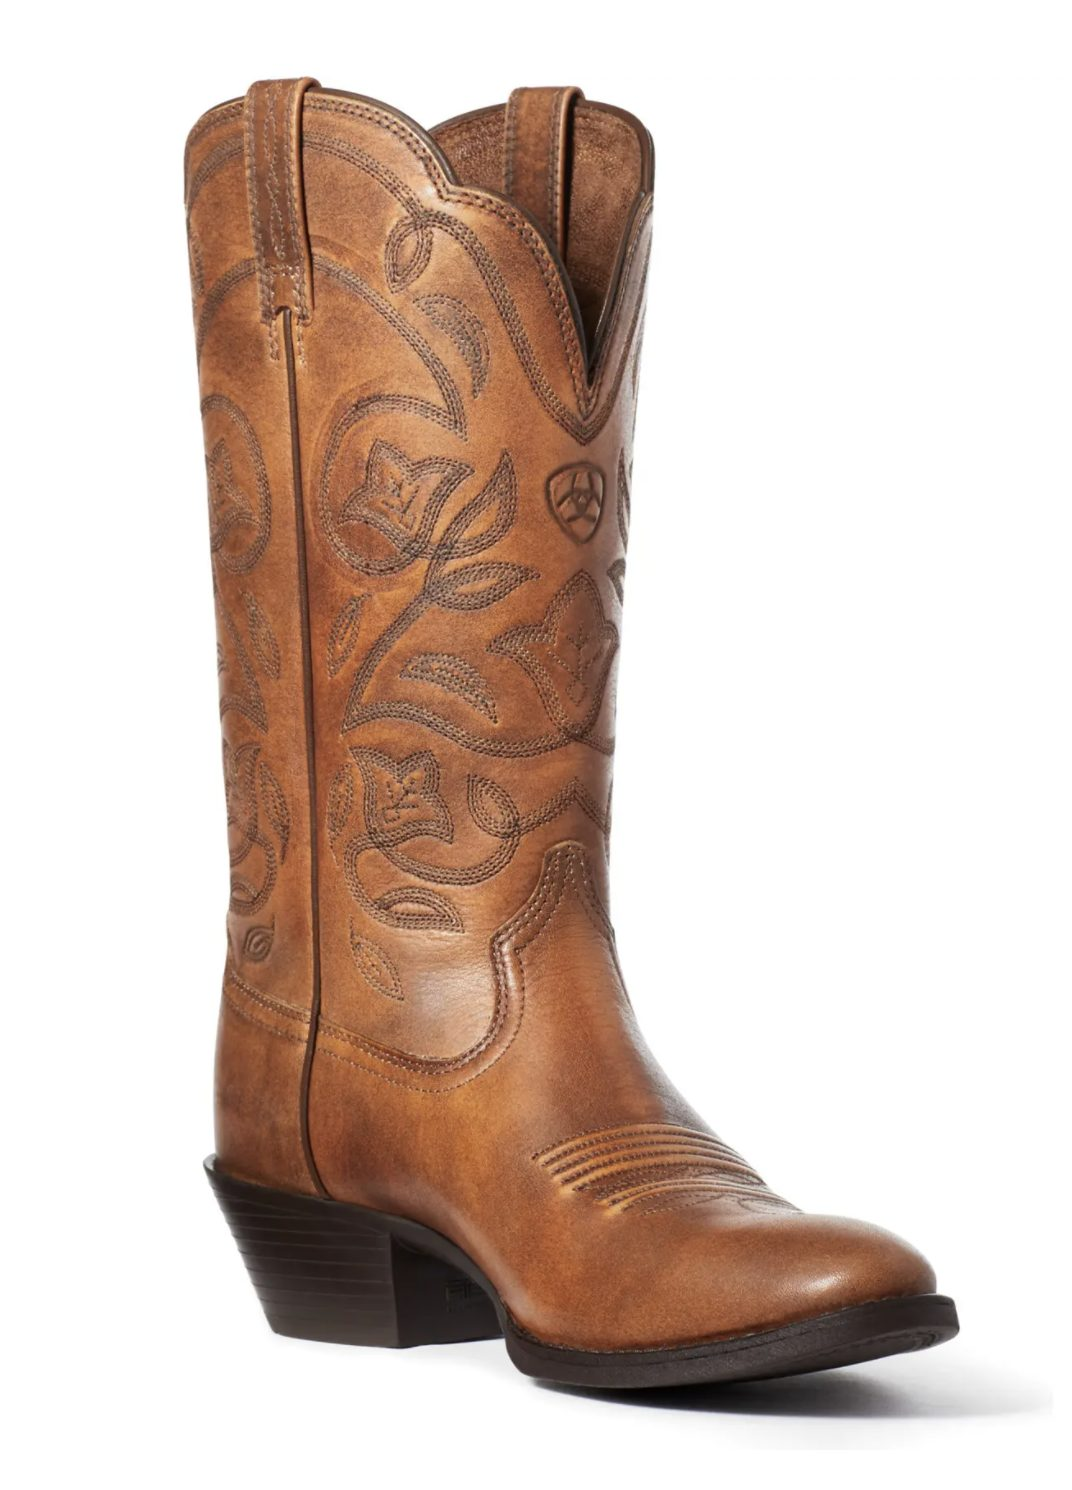 Tan heritage Western cowboy boots for country music festival